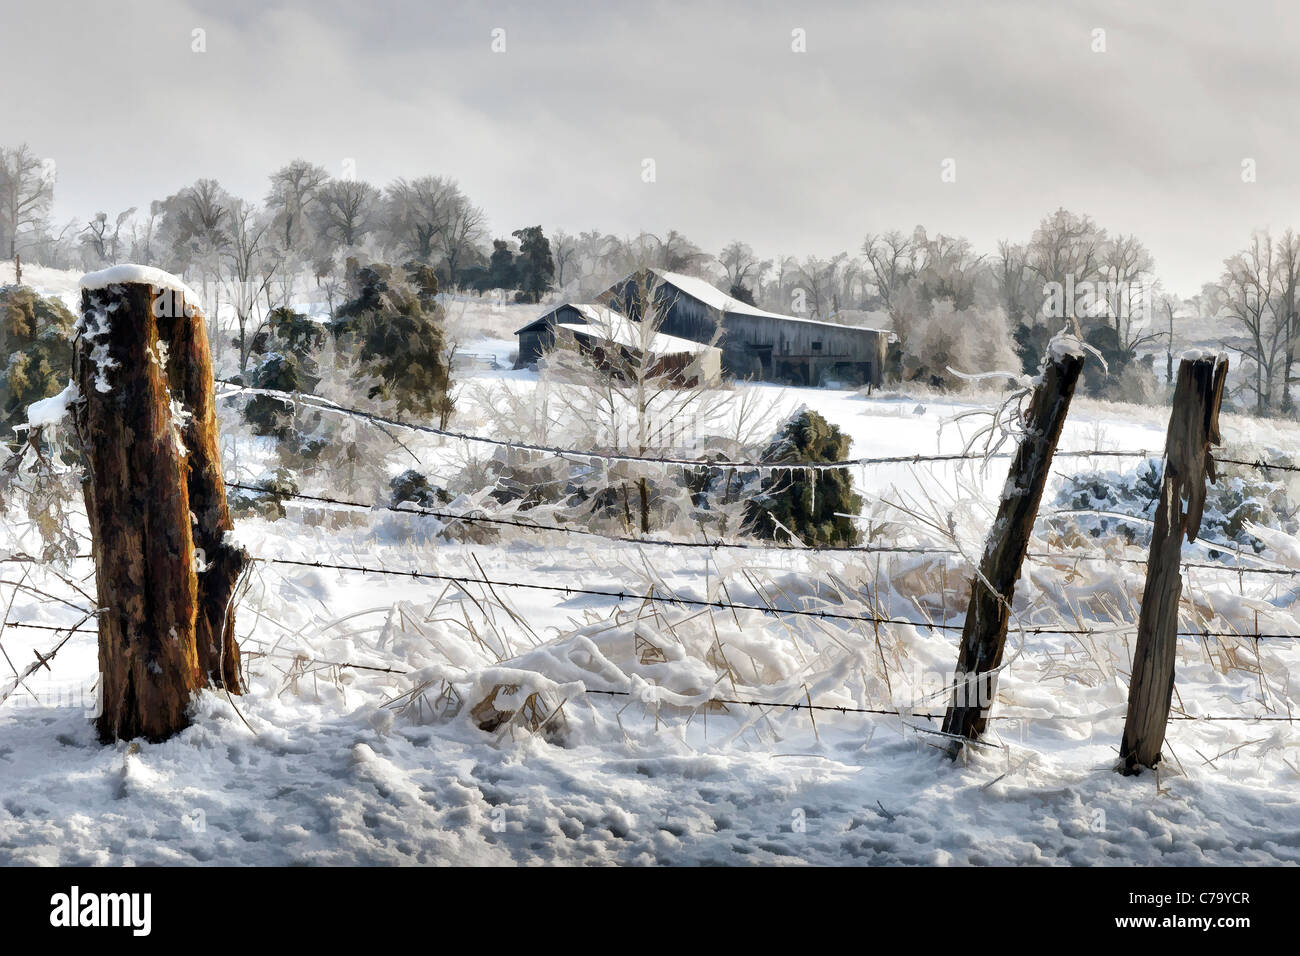 Indiana Farm In Winter Stock Photos & Indiana Farm In Winter Stock ...